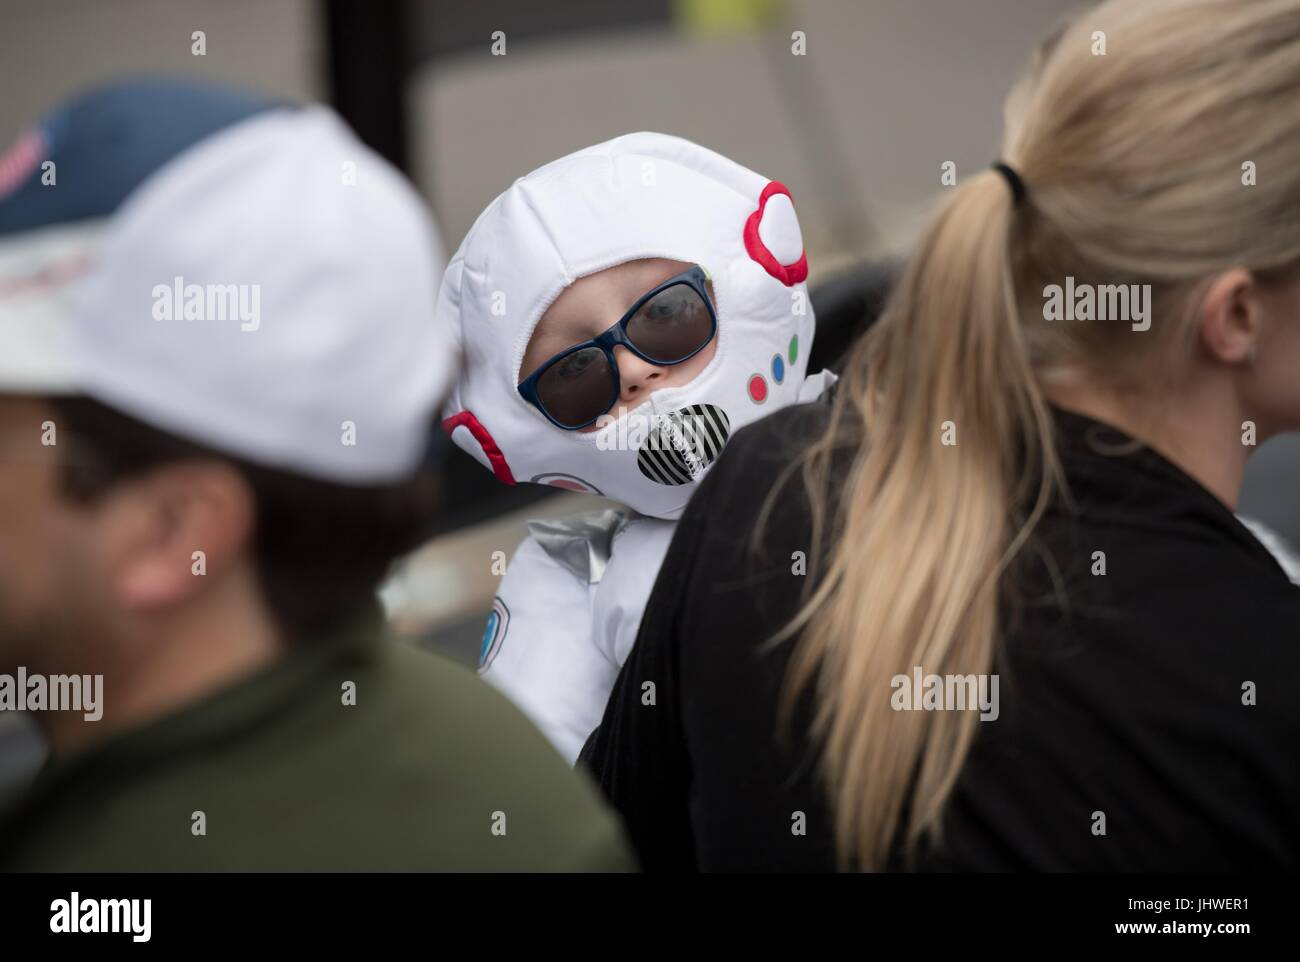 A child dressed as an astronaut participates in a costume contest during the NASA Mars New Year celebration May - Stock Image